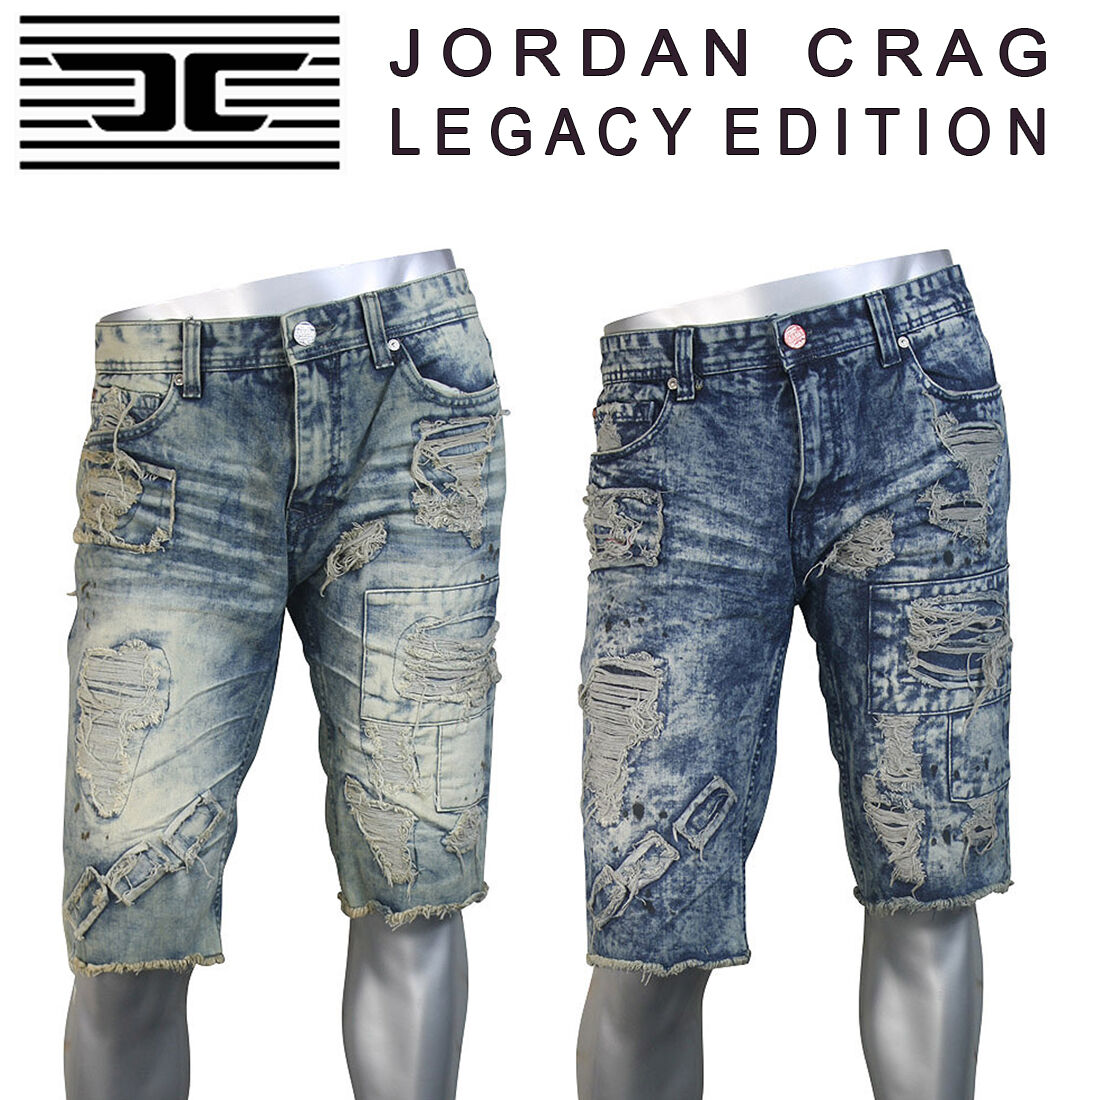 NEW MEN JORDAN CRAIG CUT OFF WASH JEAN SHORT DENIM RIPPED J221S